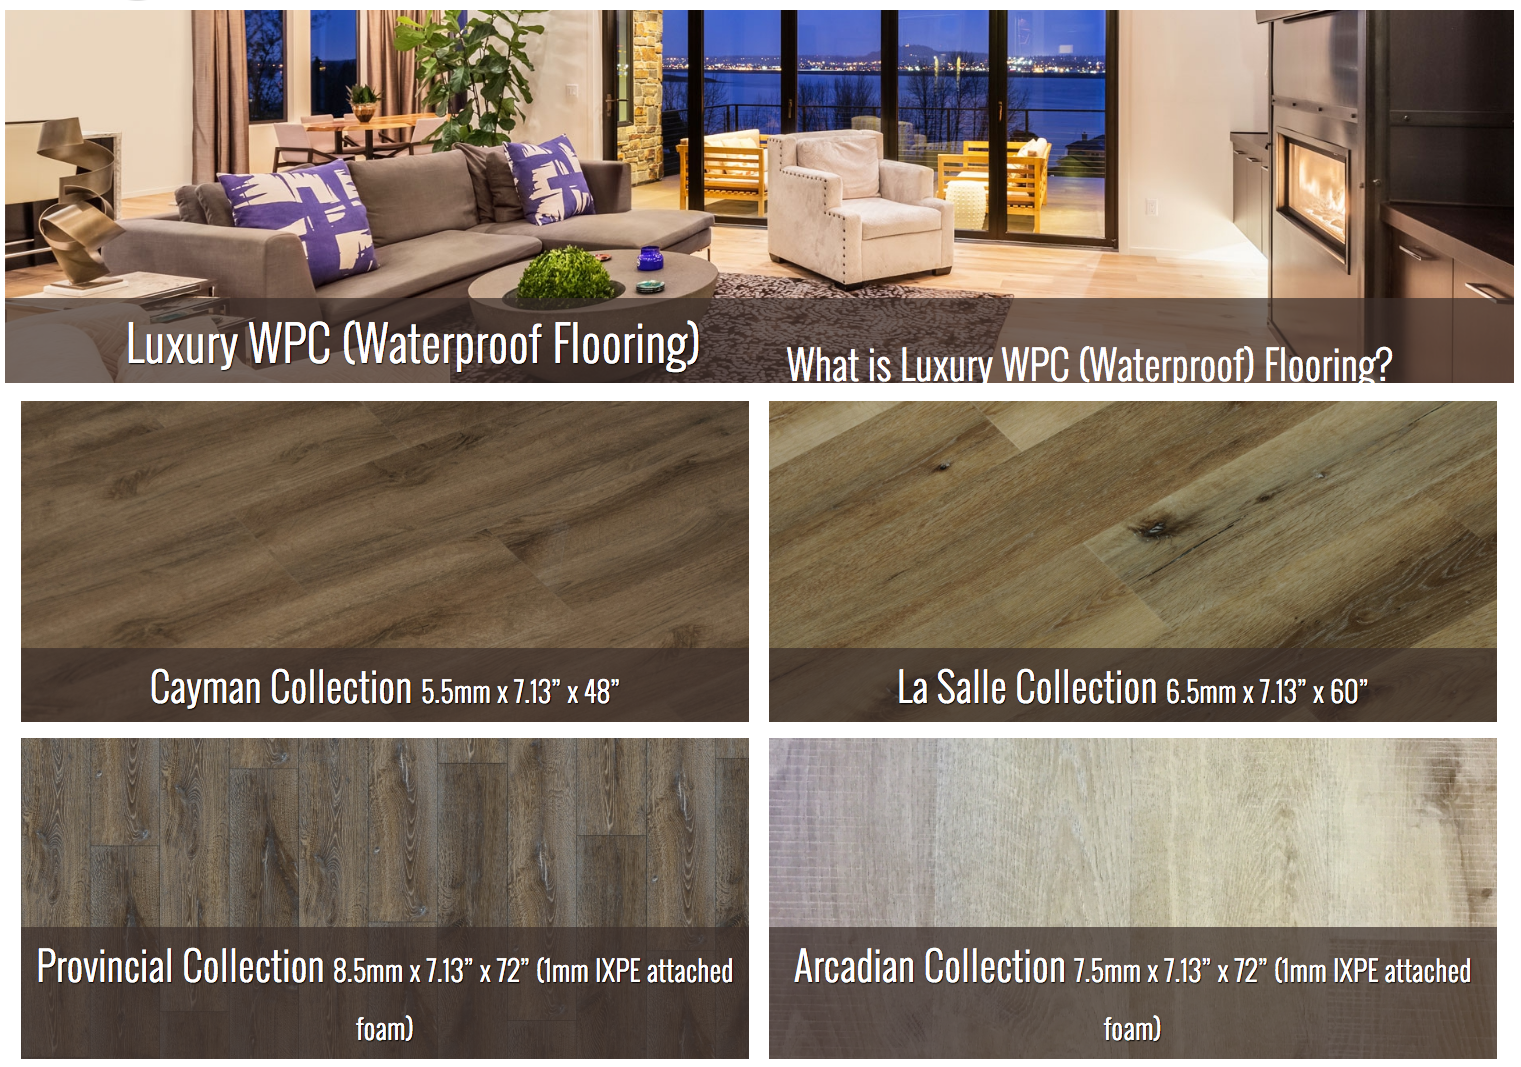 New WPC Products - Water Proof Flooring